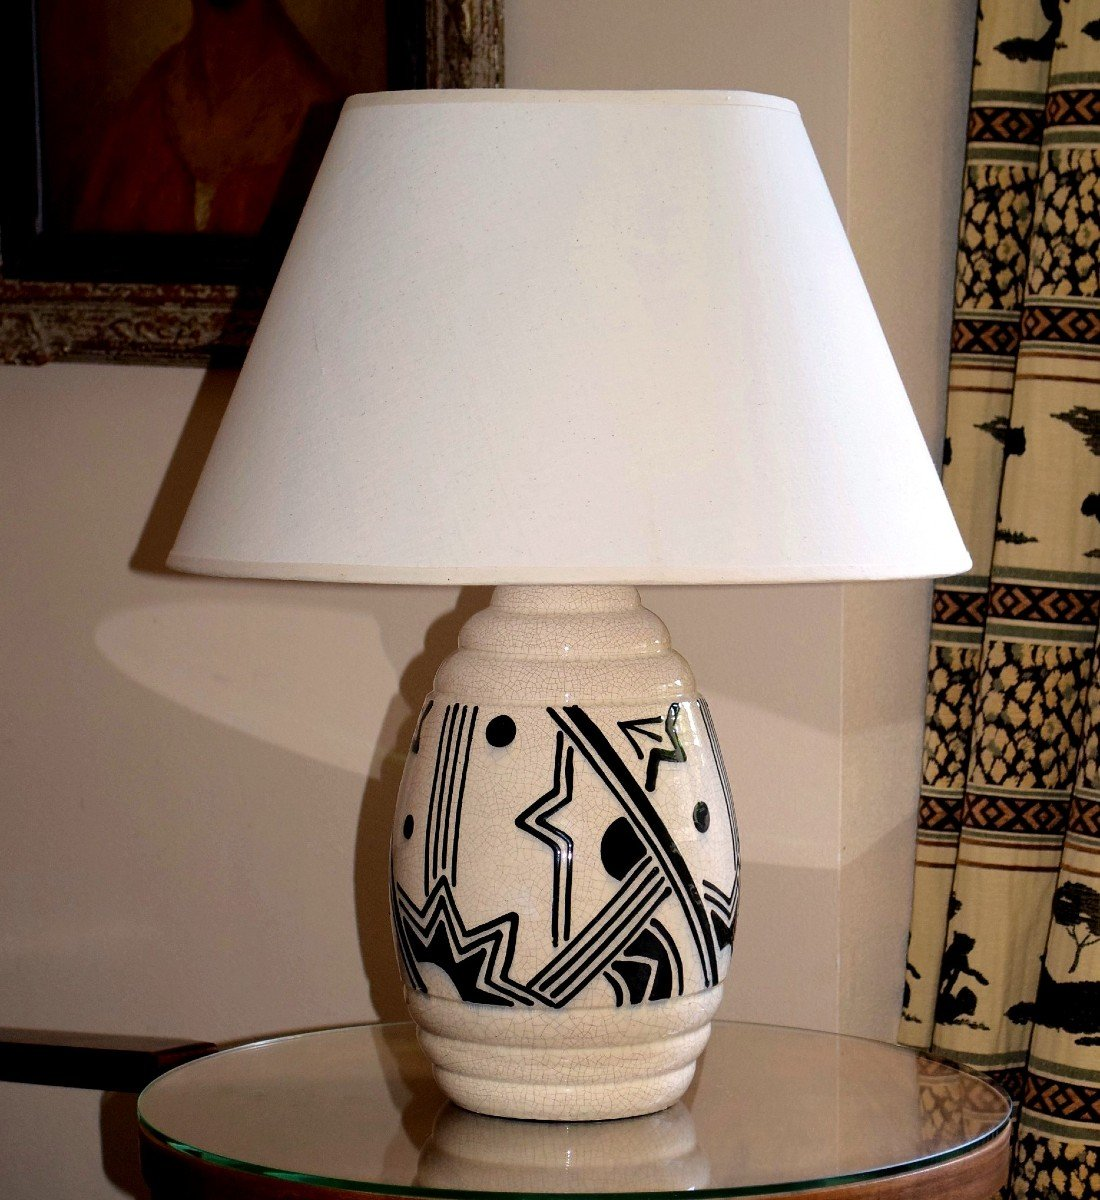 Large Africanist Art Deco Lamp In Cracked Earthenware-photo-2